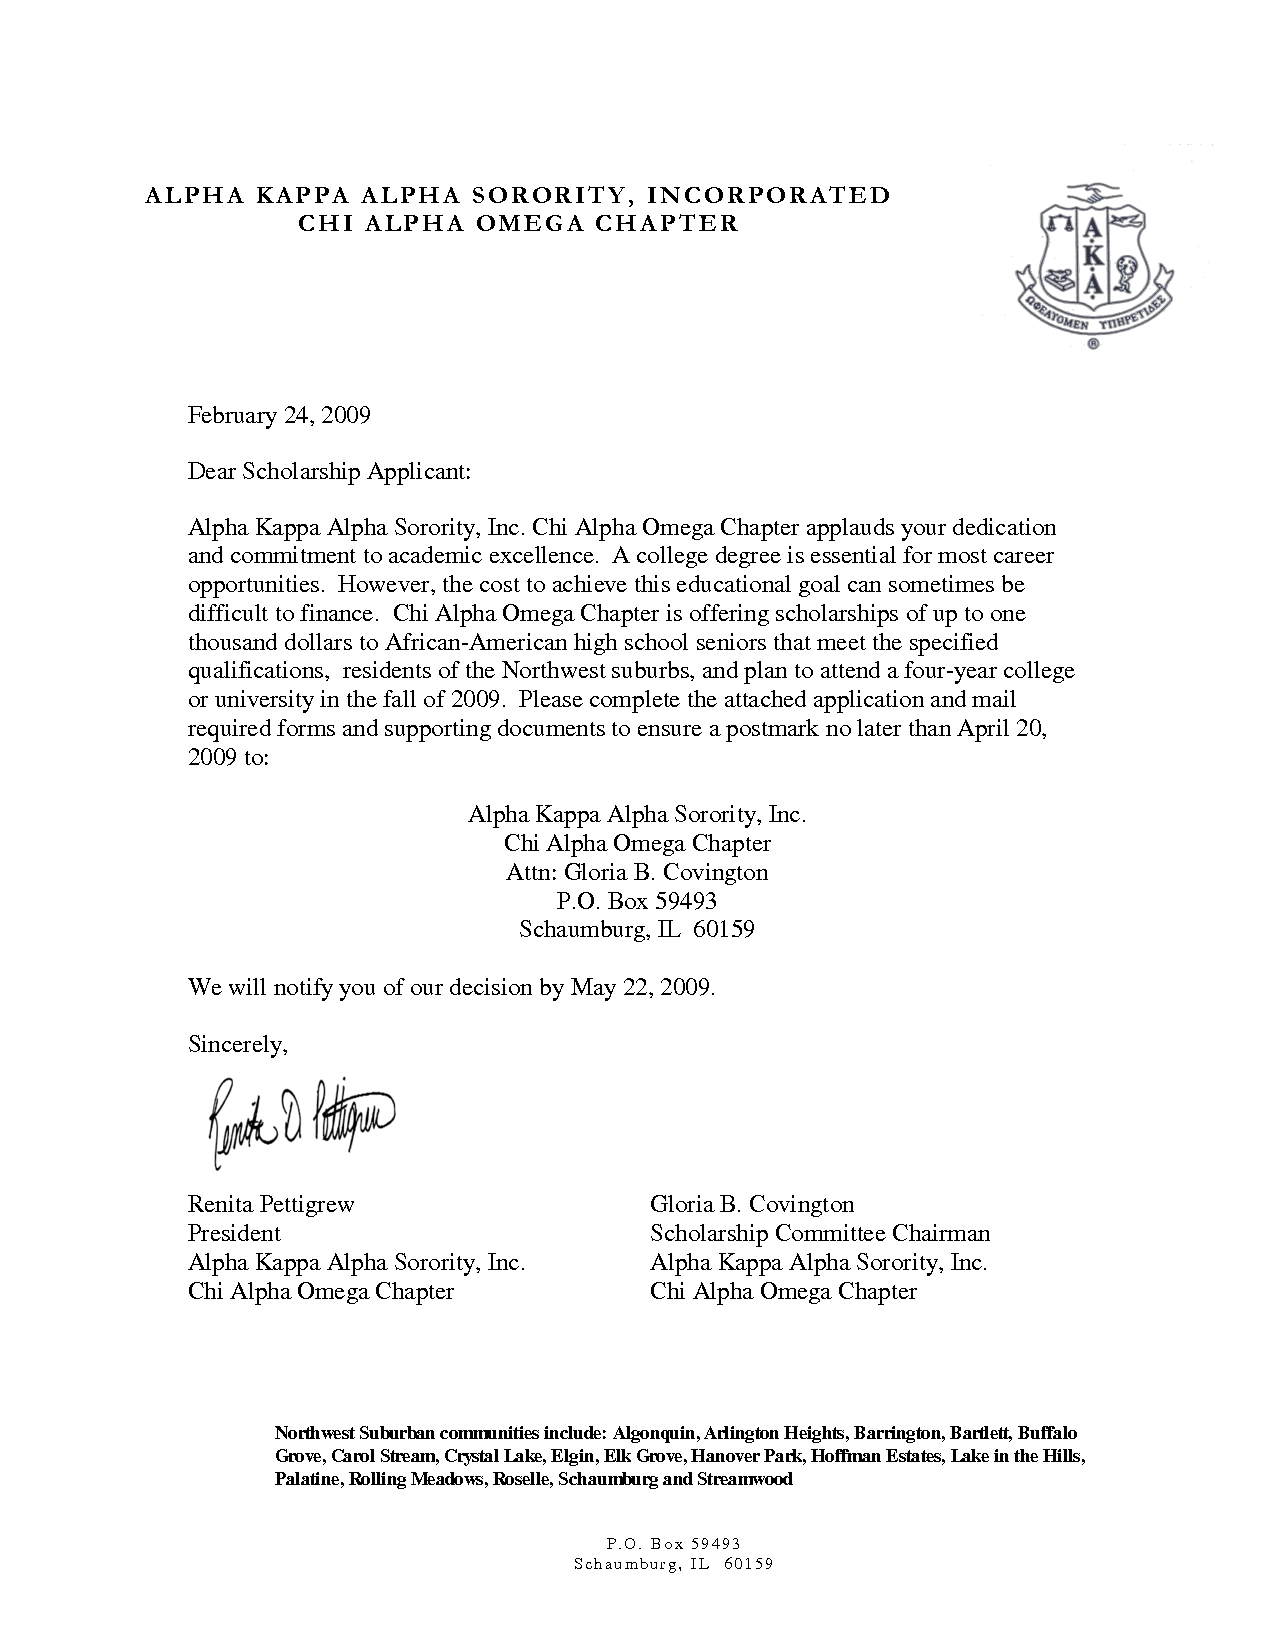 Recommendation Letter For Sorority Samples  EczaSolinfCo